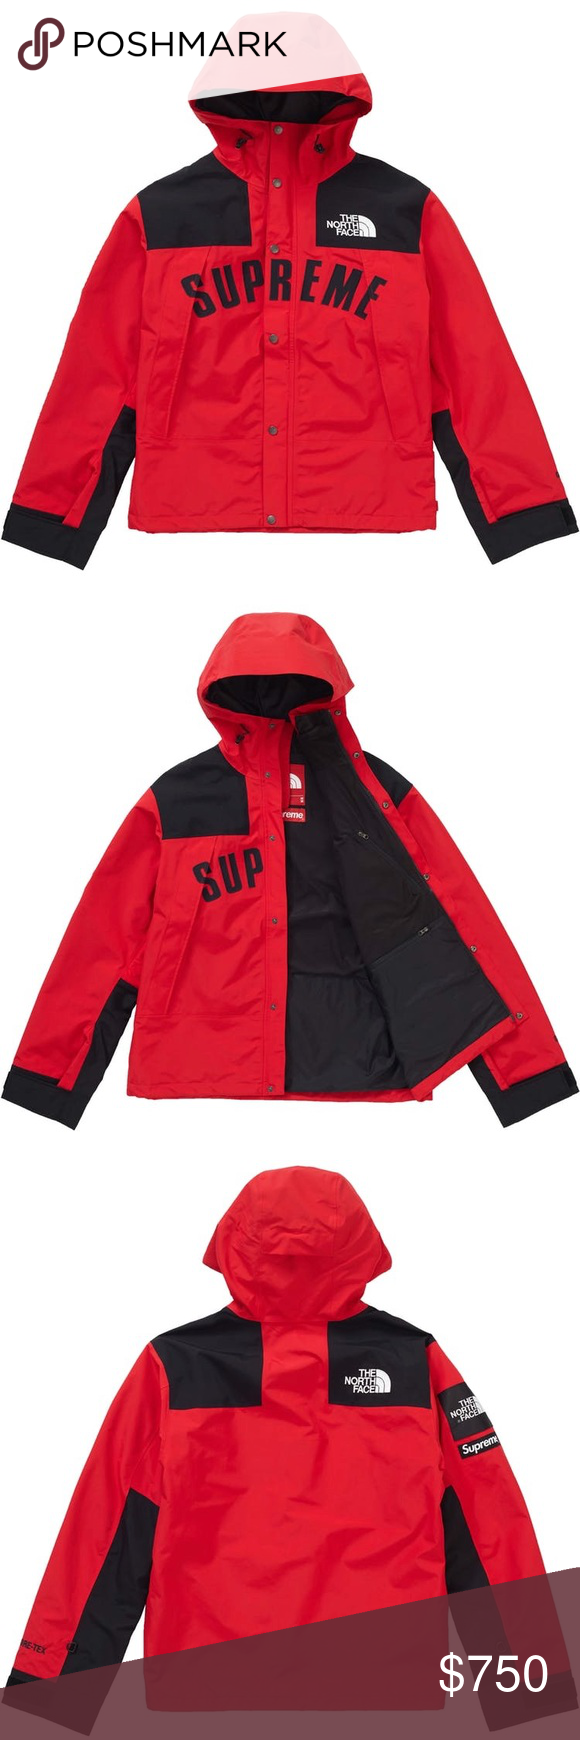 Brandnew! Supreme The NorthFace Arc logo mountain! Red and